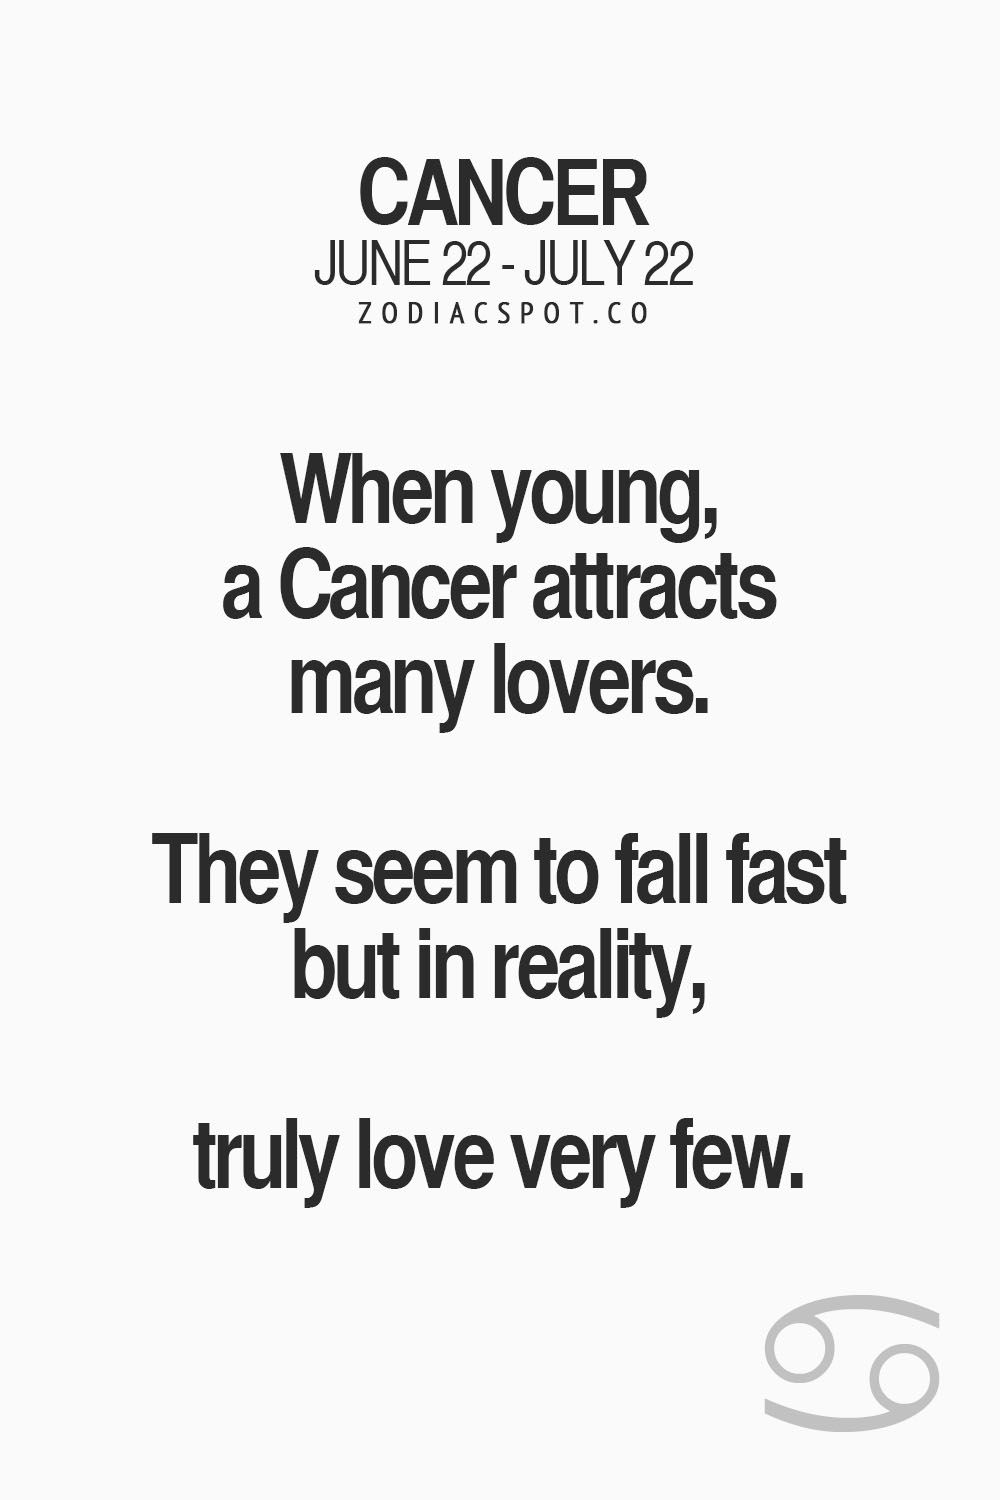 Zodiacspot Your All In One Source For Astrology Cancer Quotes Cancer Zodiac Cancer Horoscope